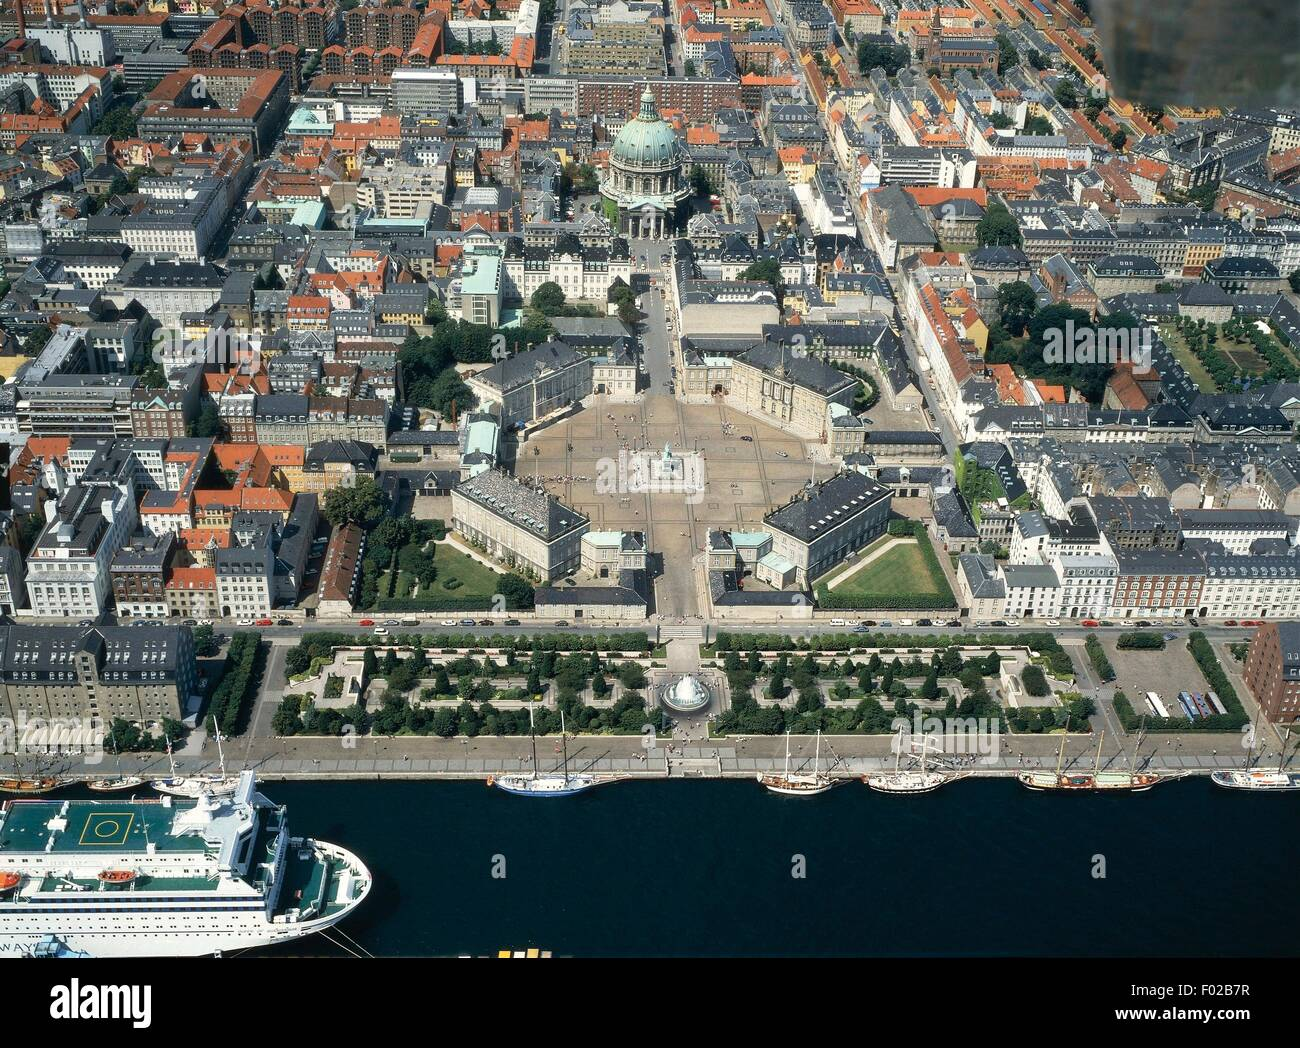 Aerial view of Amalienborg Palace, residence of the Danish Royal family, with Frederik's church (Frederikskirken), - Stock Image